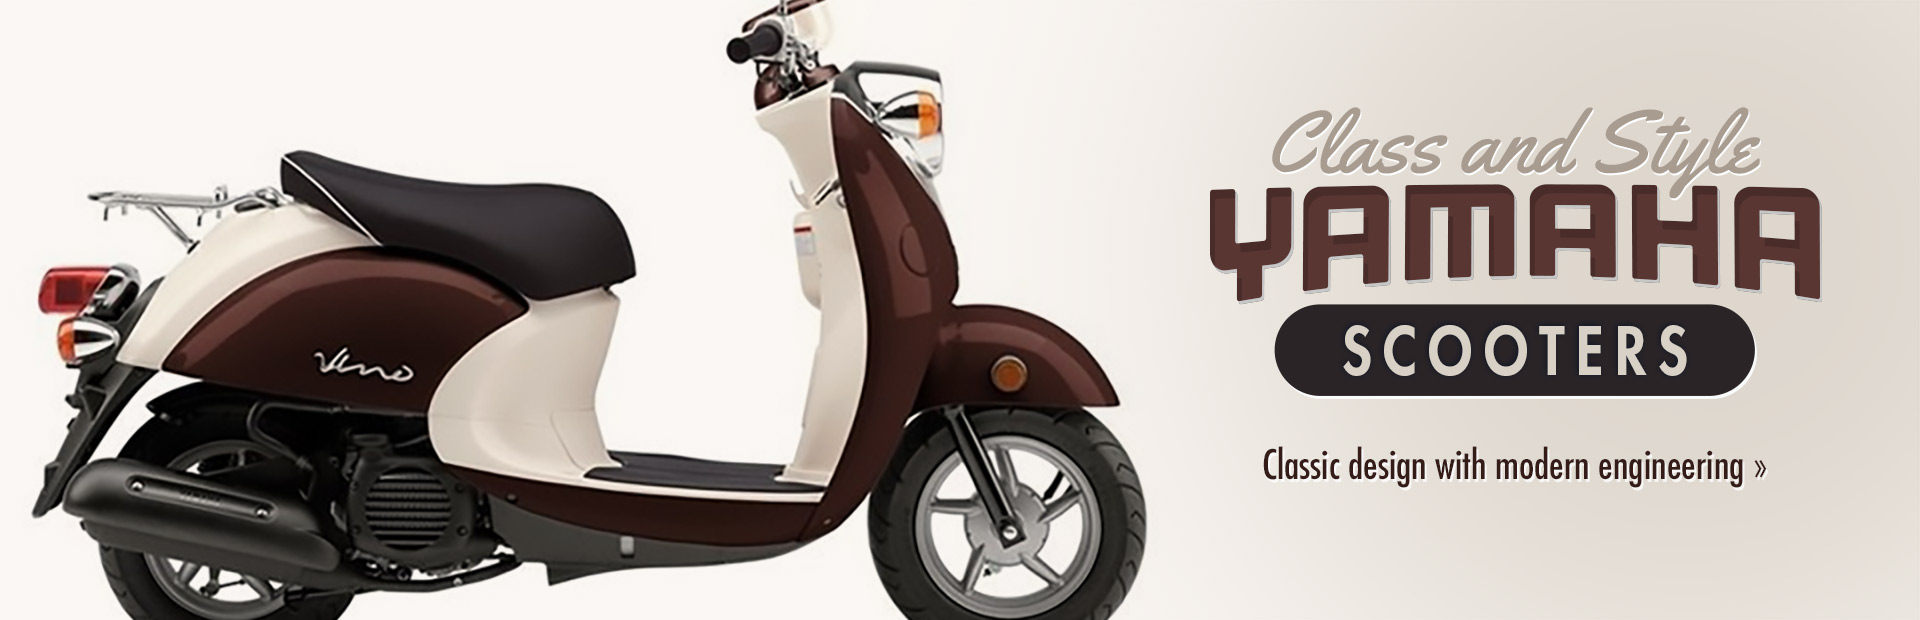 Yamaha Scooters: Click here to view the models.